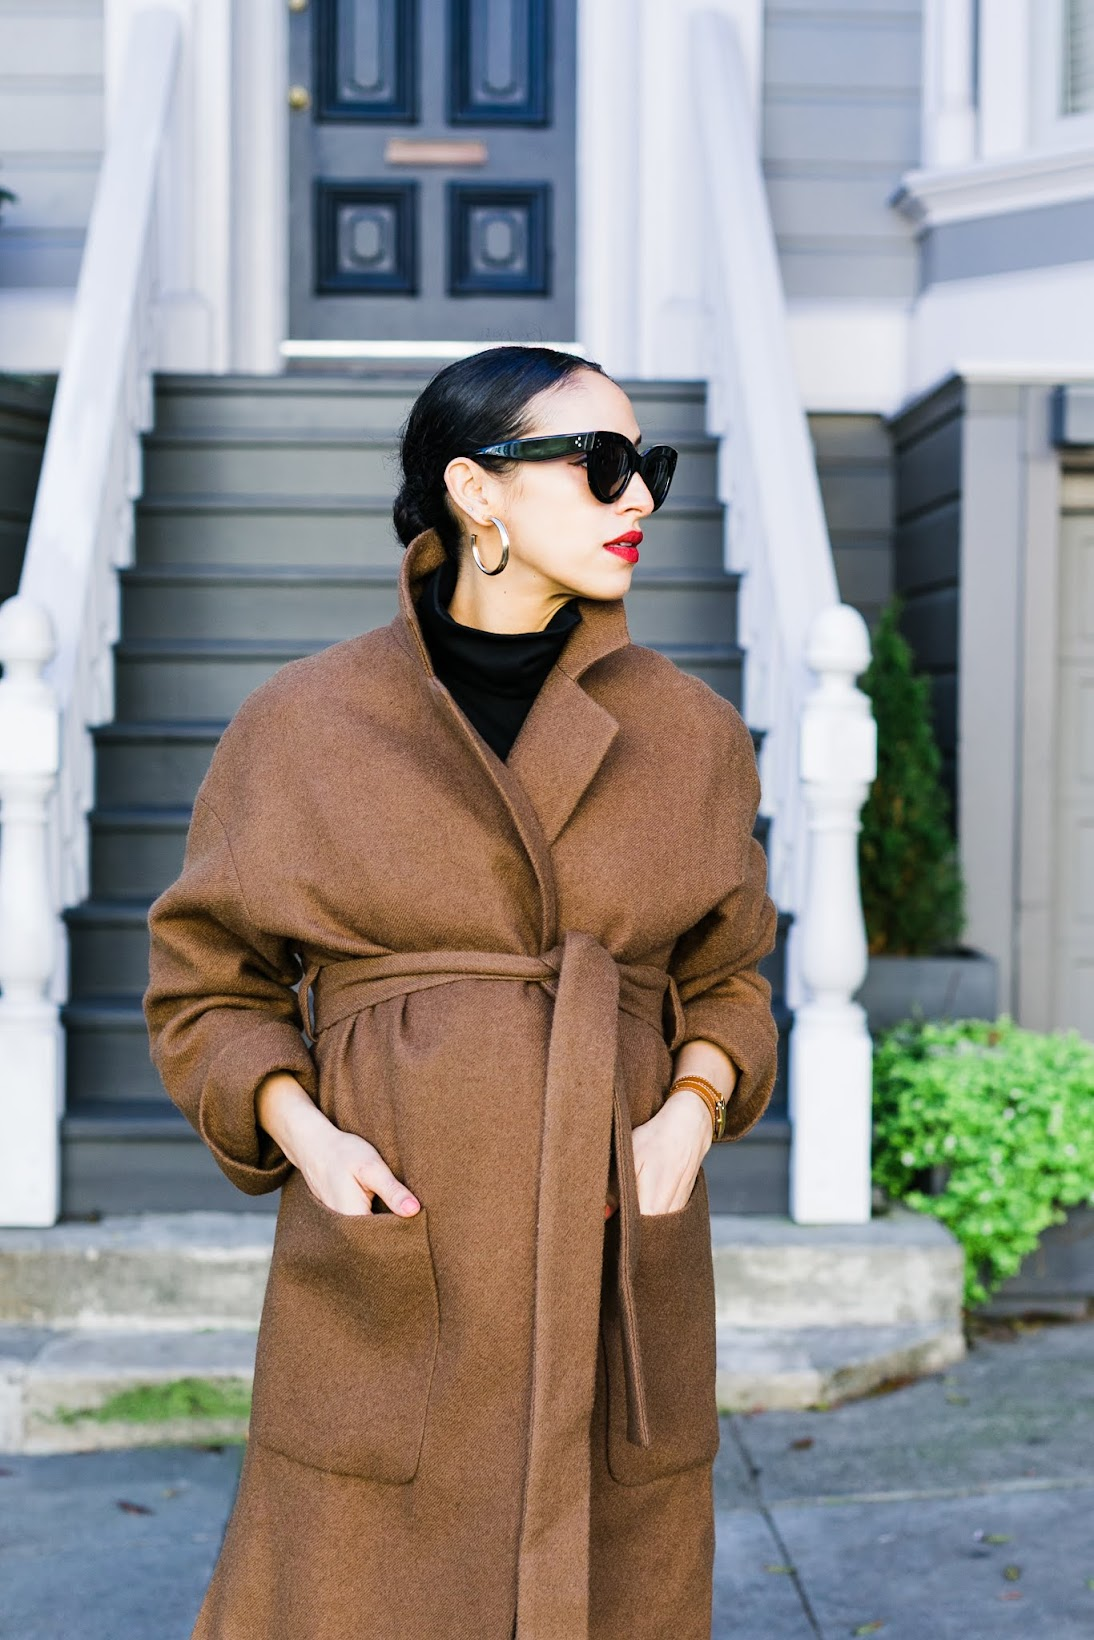 camel wrap coat, pregnancy tips third trimester, zara new season, stay chic during pregnancy, maternity chic, third trimester style, style hacks, style tips